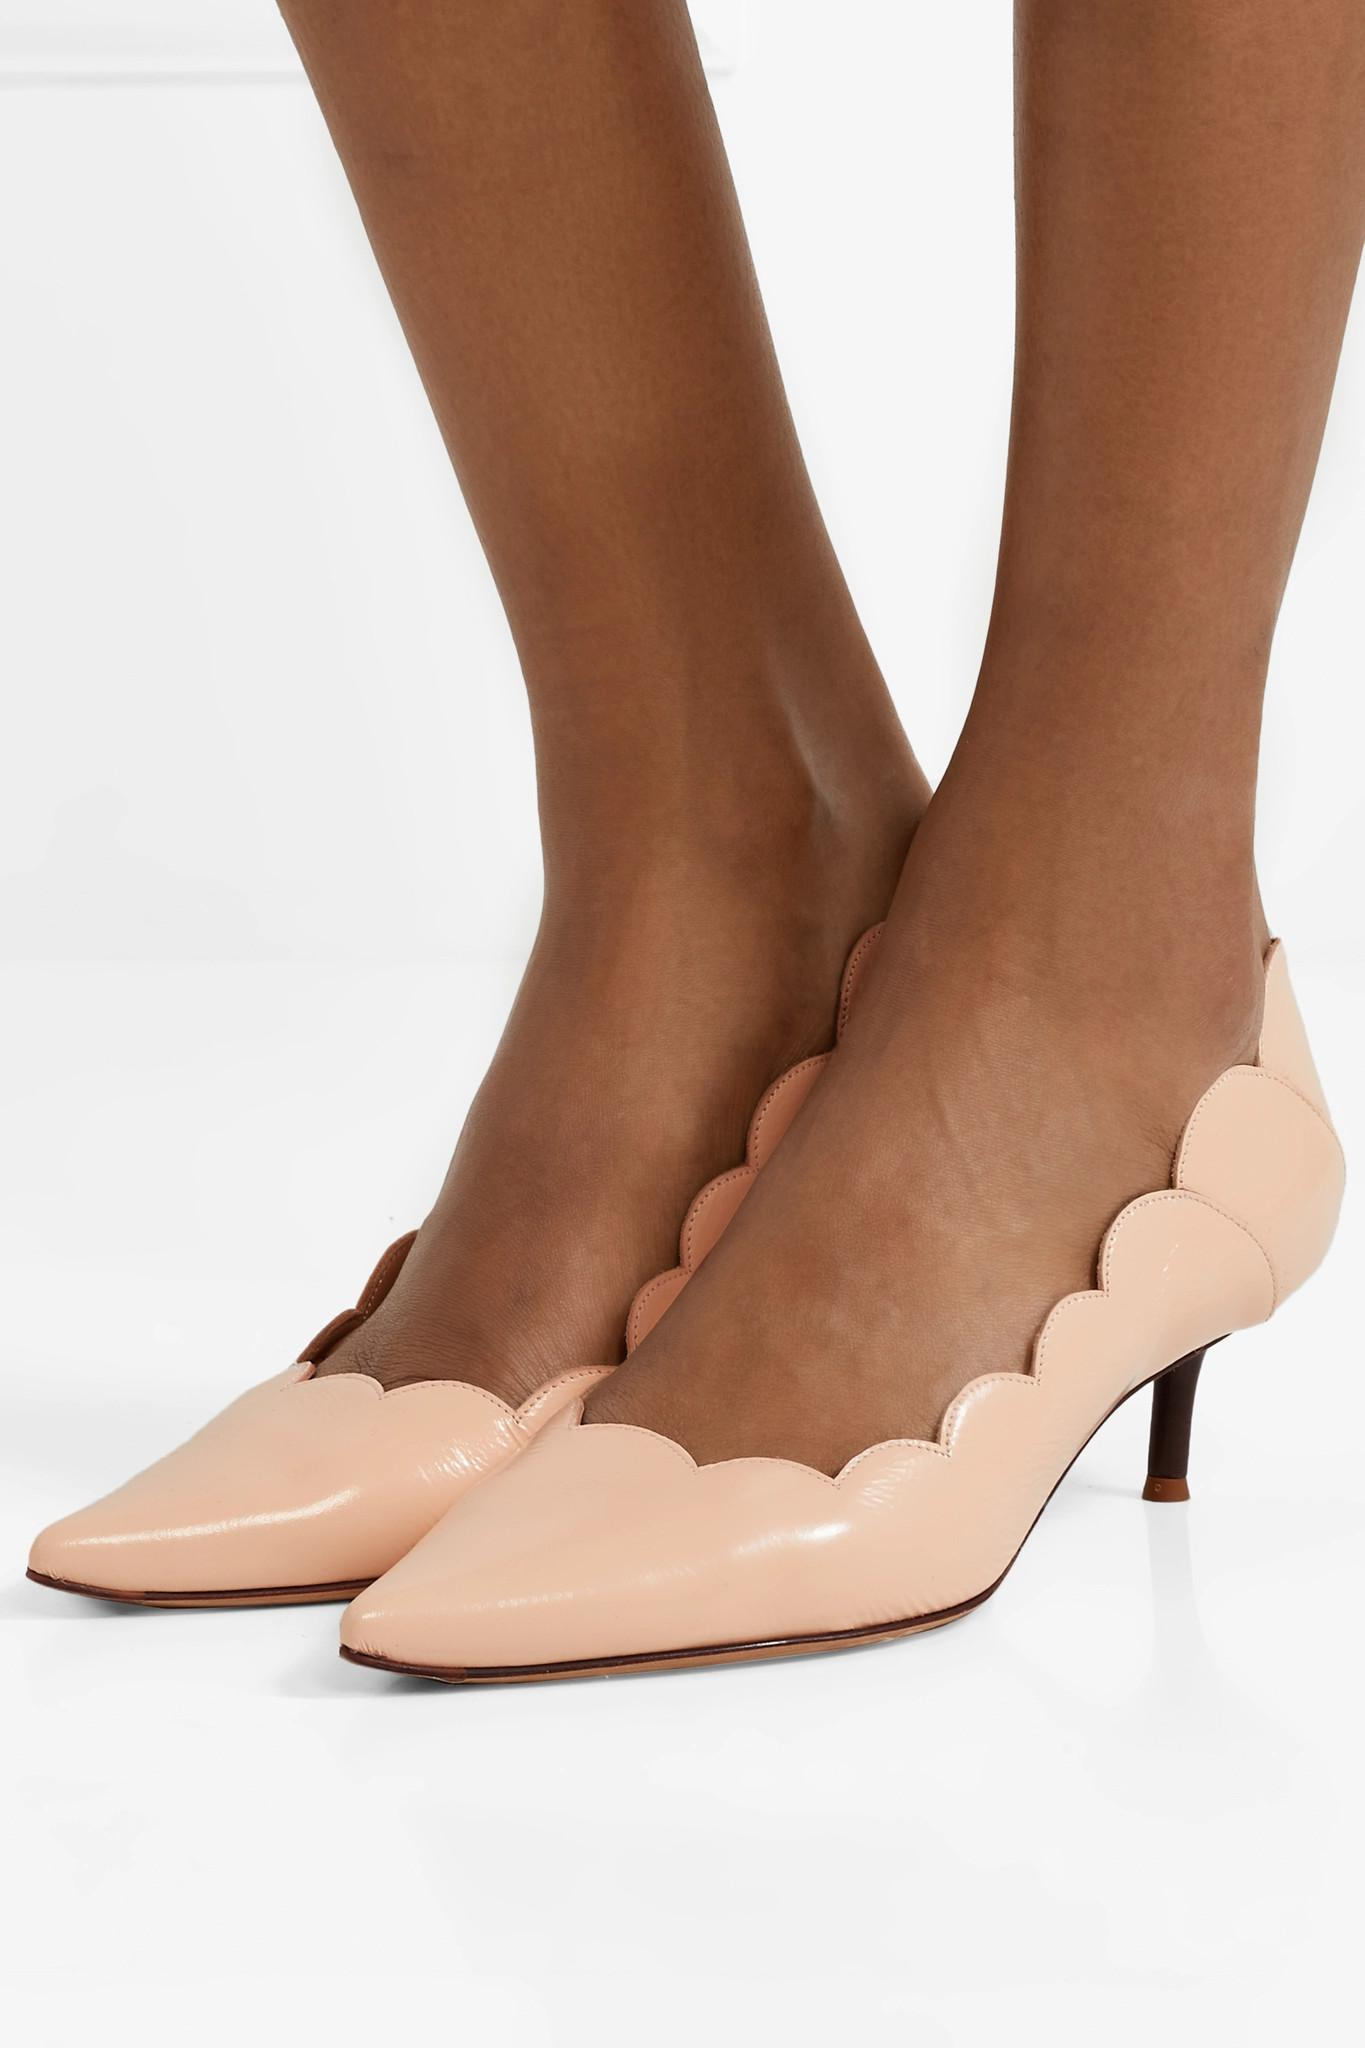 b98d55a95106 Chloé - Multicolor Lauren Scalloped Glossed-leather Pumps - Lyst. View  fullscreen